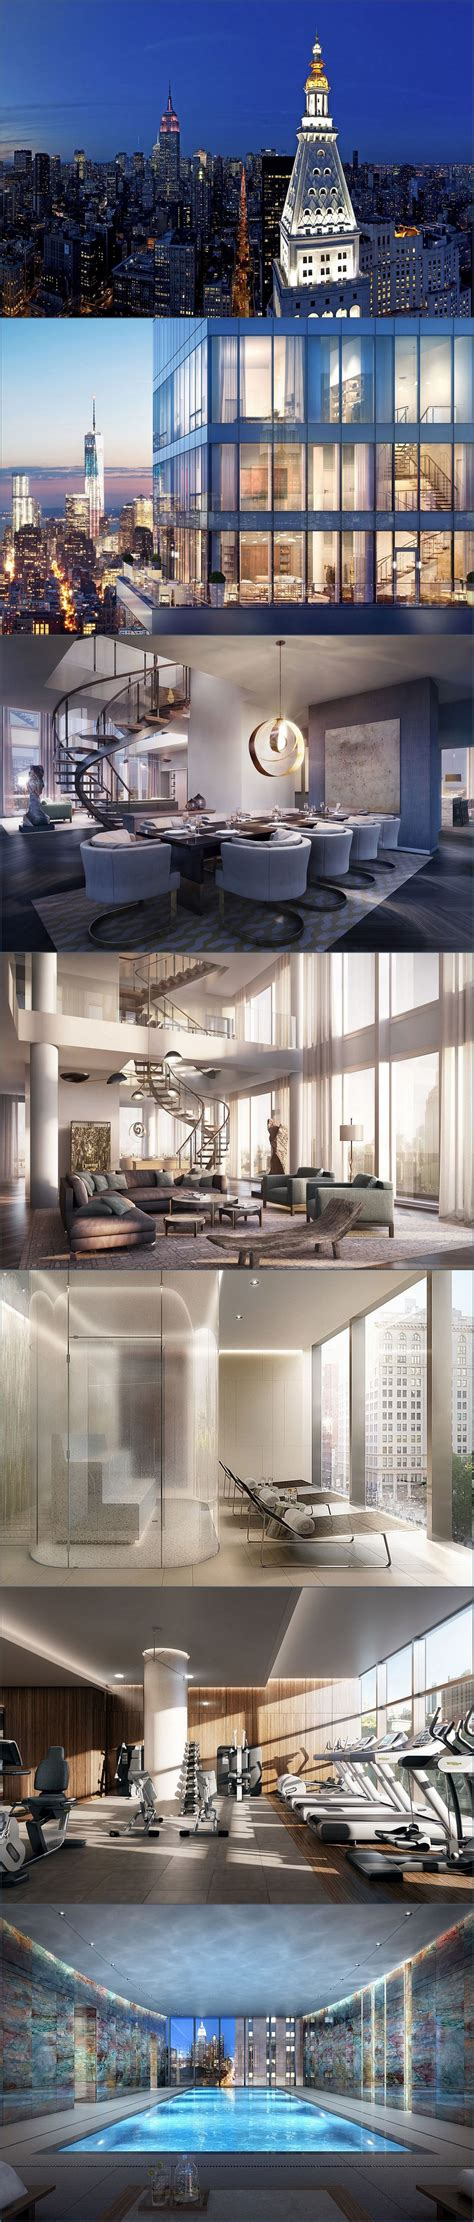 luxury interior design rupert murdoch s penthouse in nyc rupert mudroch s new ny penthouse style estate